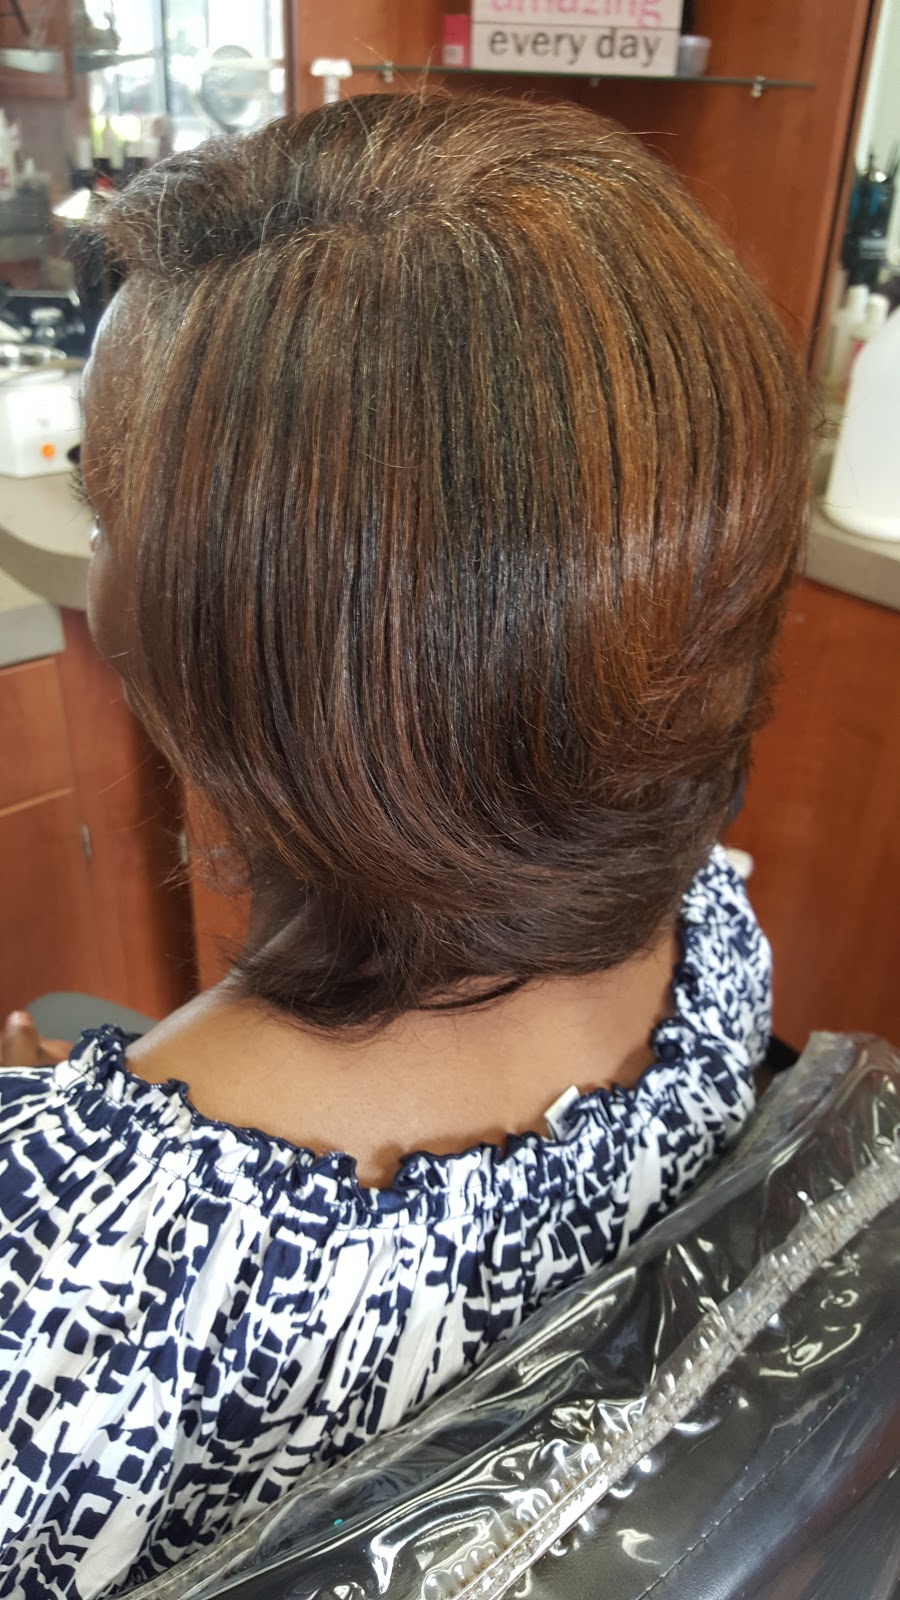 3 questions to ask yourself before you get permanent color latoya healthy color treated hair solutioingenieria Gallery